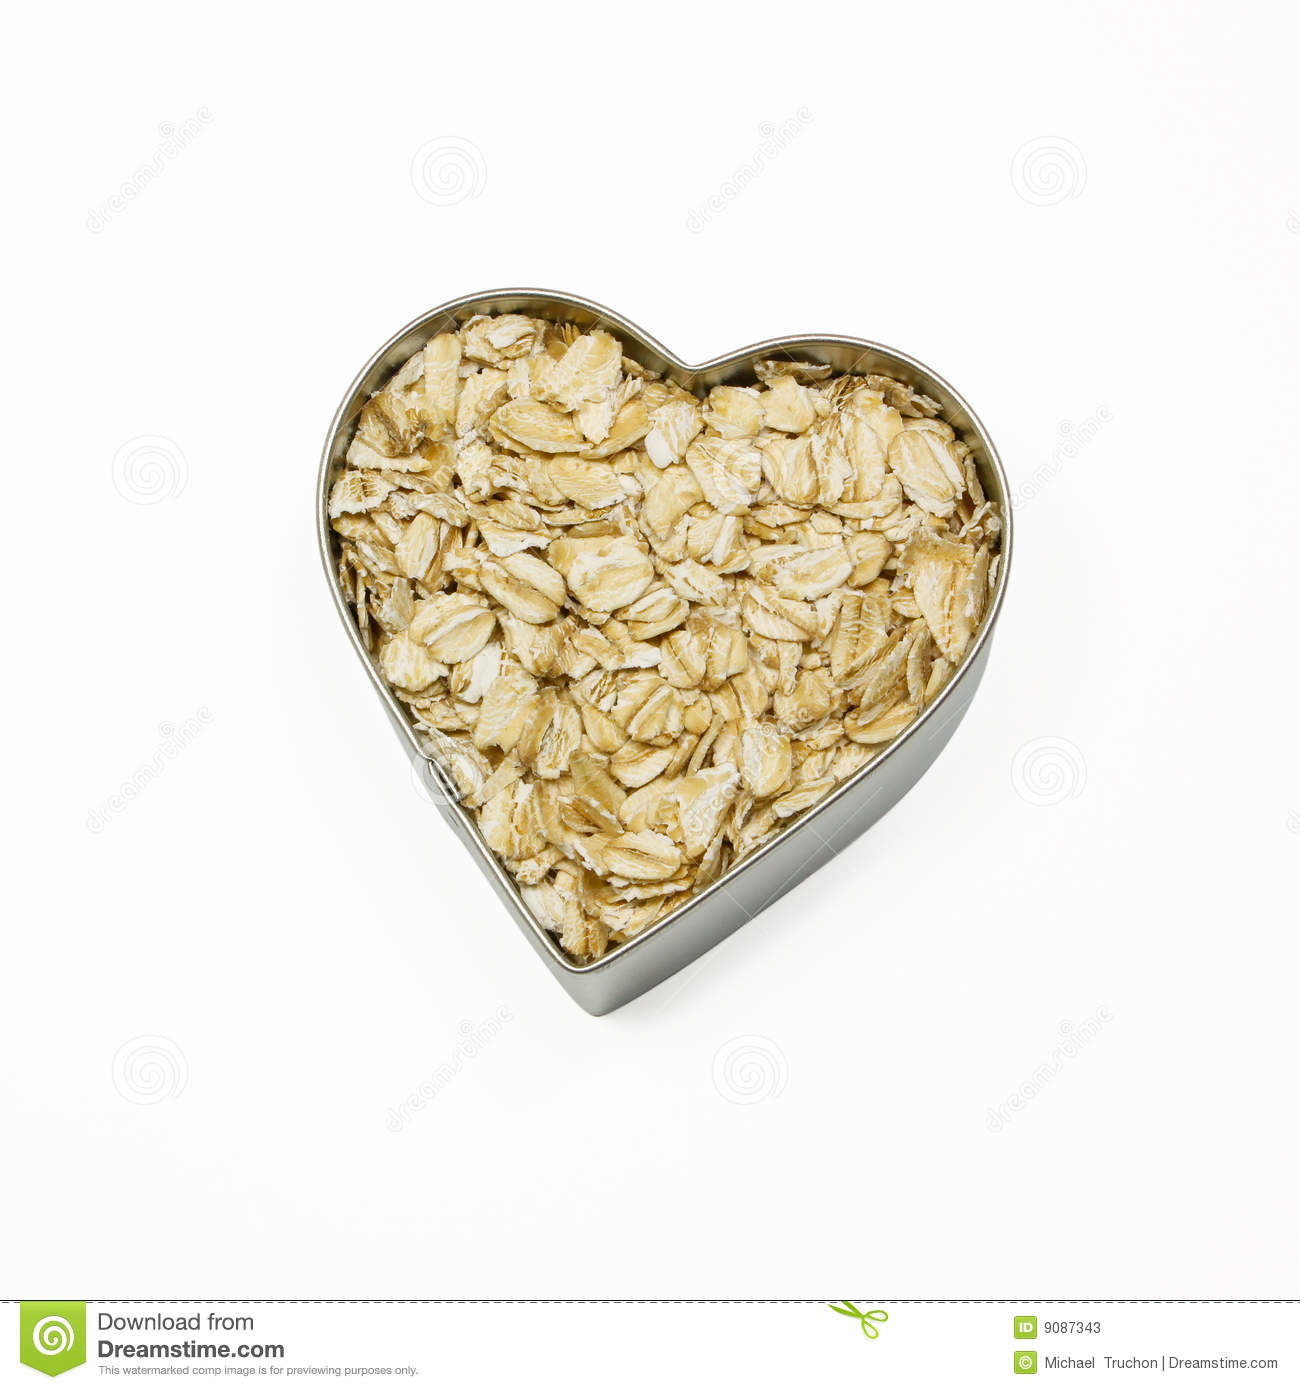 What You Can Learn From B J Fogg B Mat besides Heart Oatmeal likewise Bakery besides Health Snacks Desserts as well Delicious Quick Bread Recipes. on blueberry oatmeal with cinnamon and walnuts